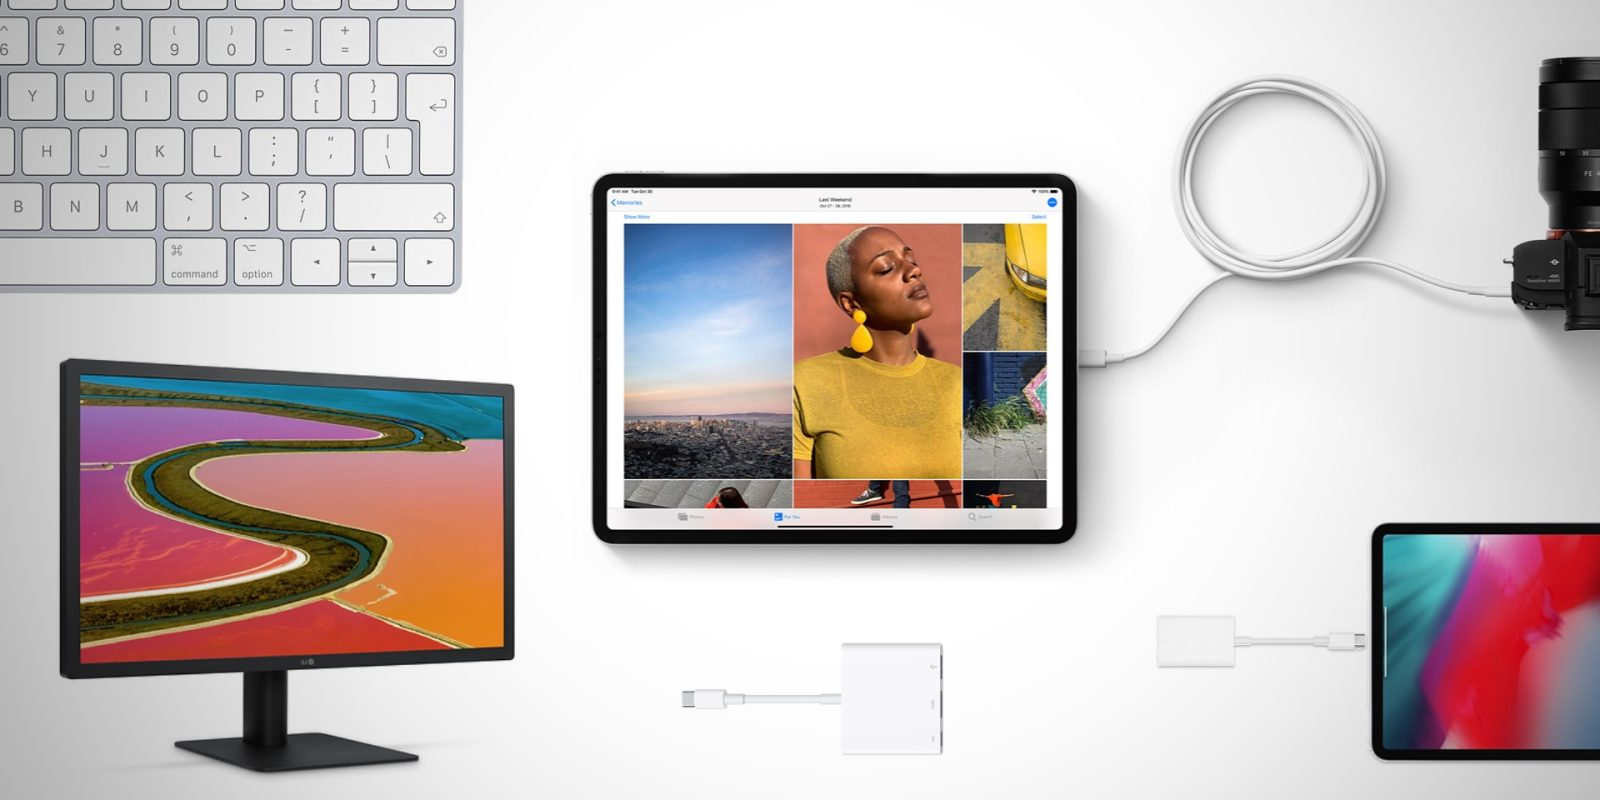 What can you connect to the new iPad Pro with USB-C? - 9to5Mac